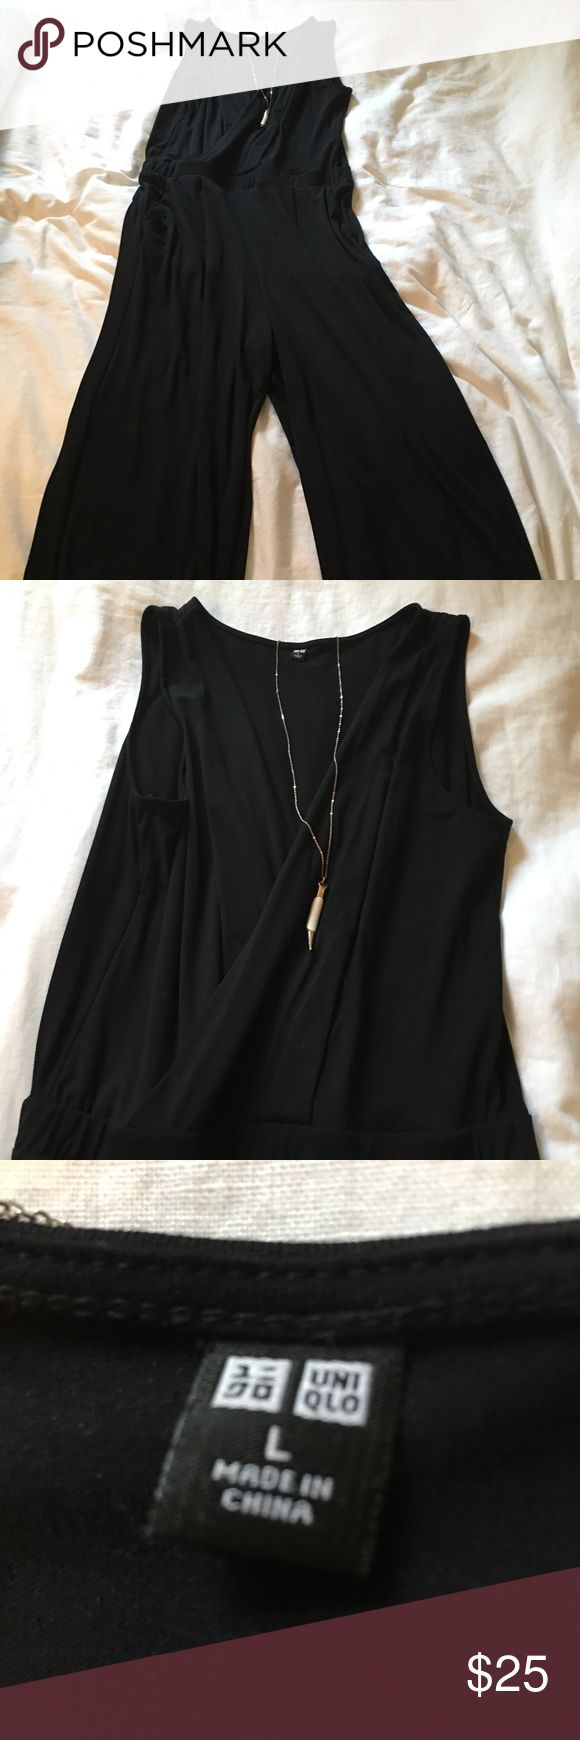 Classy and fun black pant suit This black jumpsuit is a perfect alternative to a little black dress!  Extremely comfortable and flattering, you will not want to take it off.  Gathers at the waist, wide leg pants.  Worn only one time to a bridal shower! Uniqlo Pants Jumpsuits & Rompers